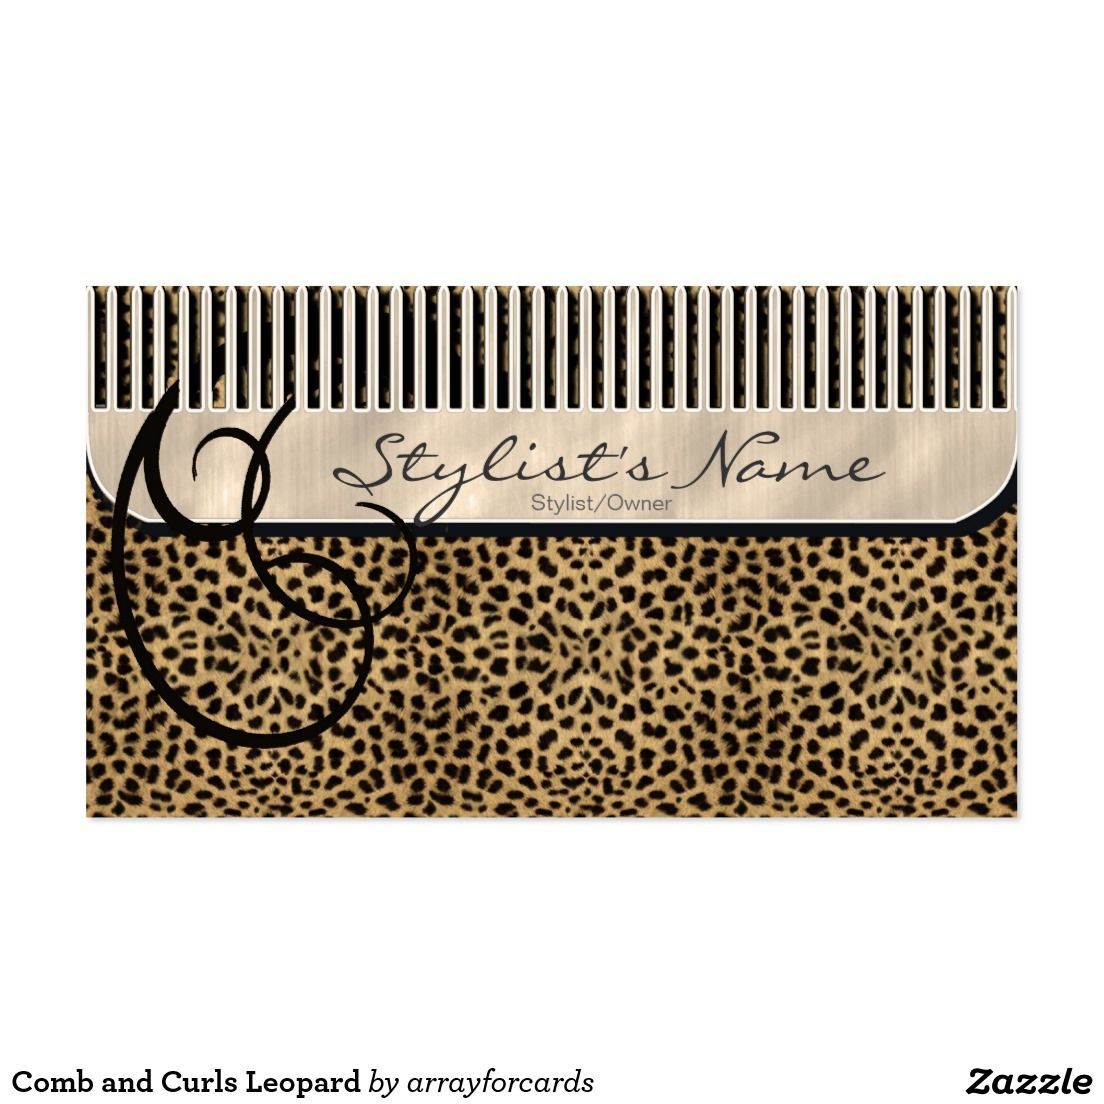 Comb and Curls Leopard Business Card Comb and Curls is a unique ...